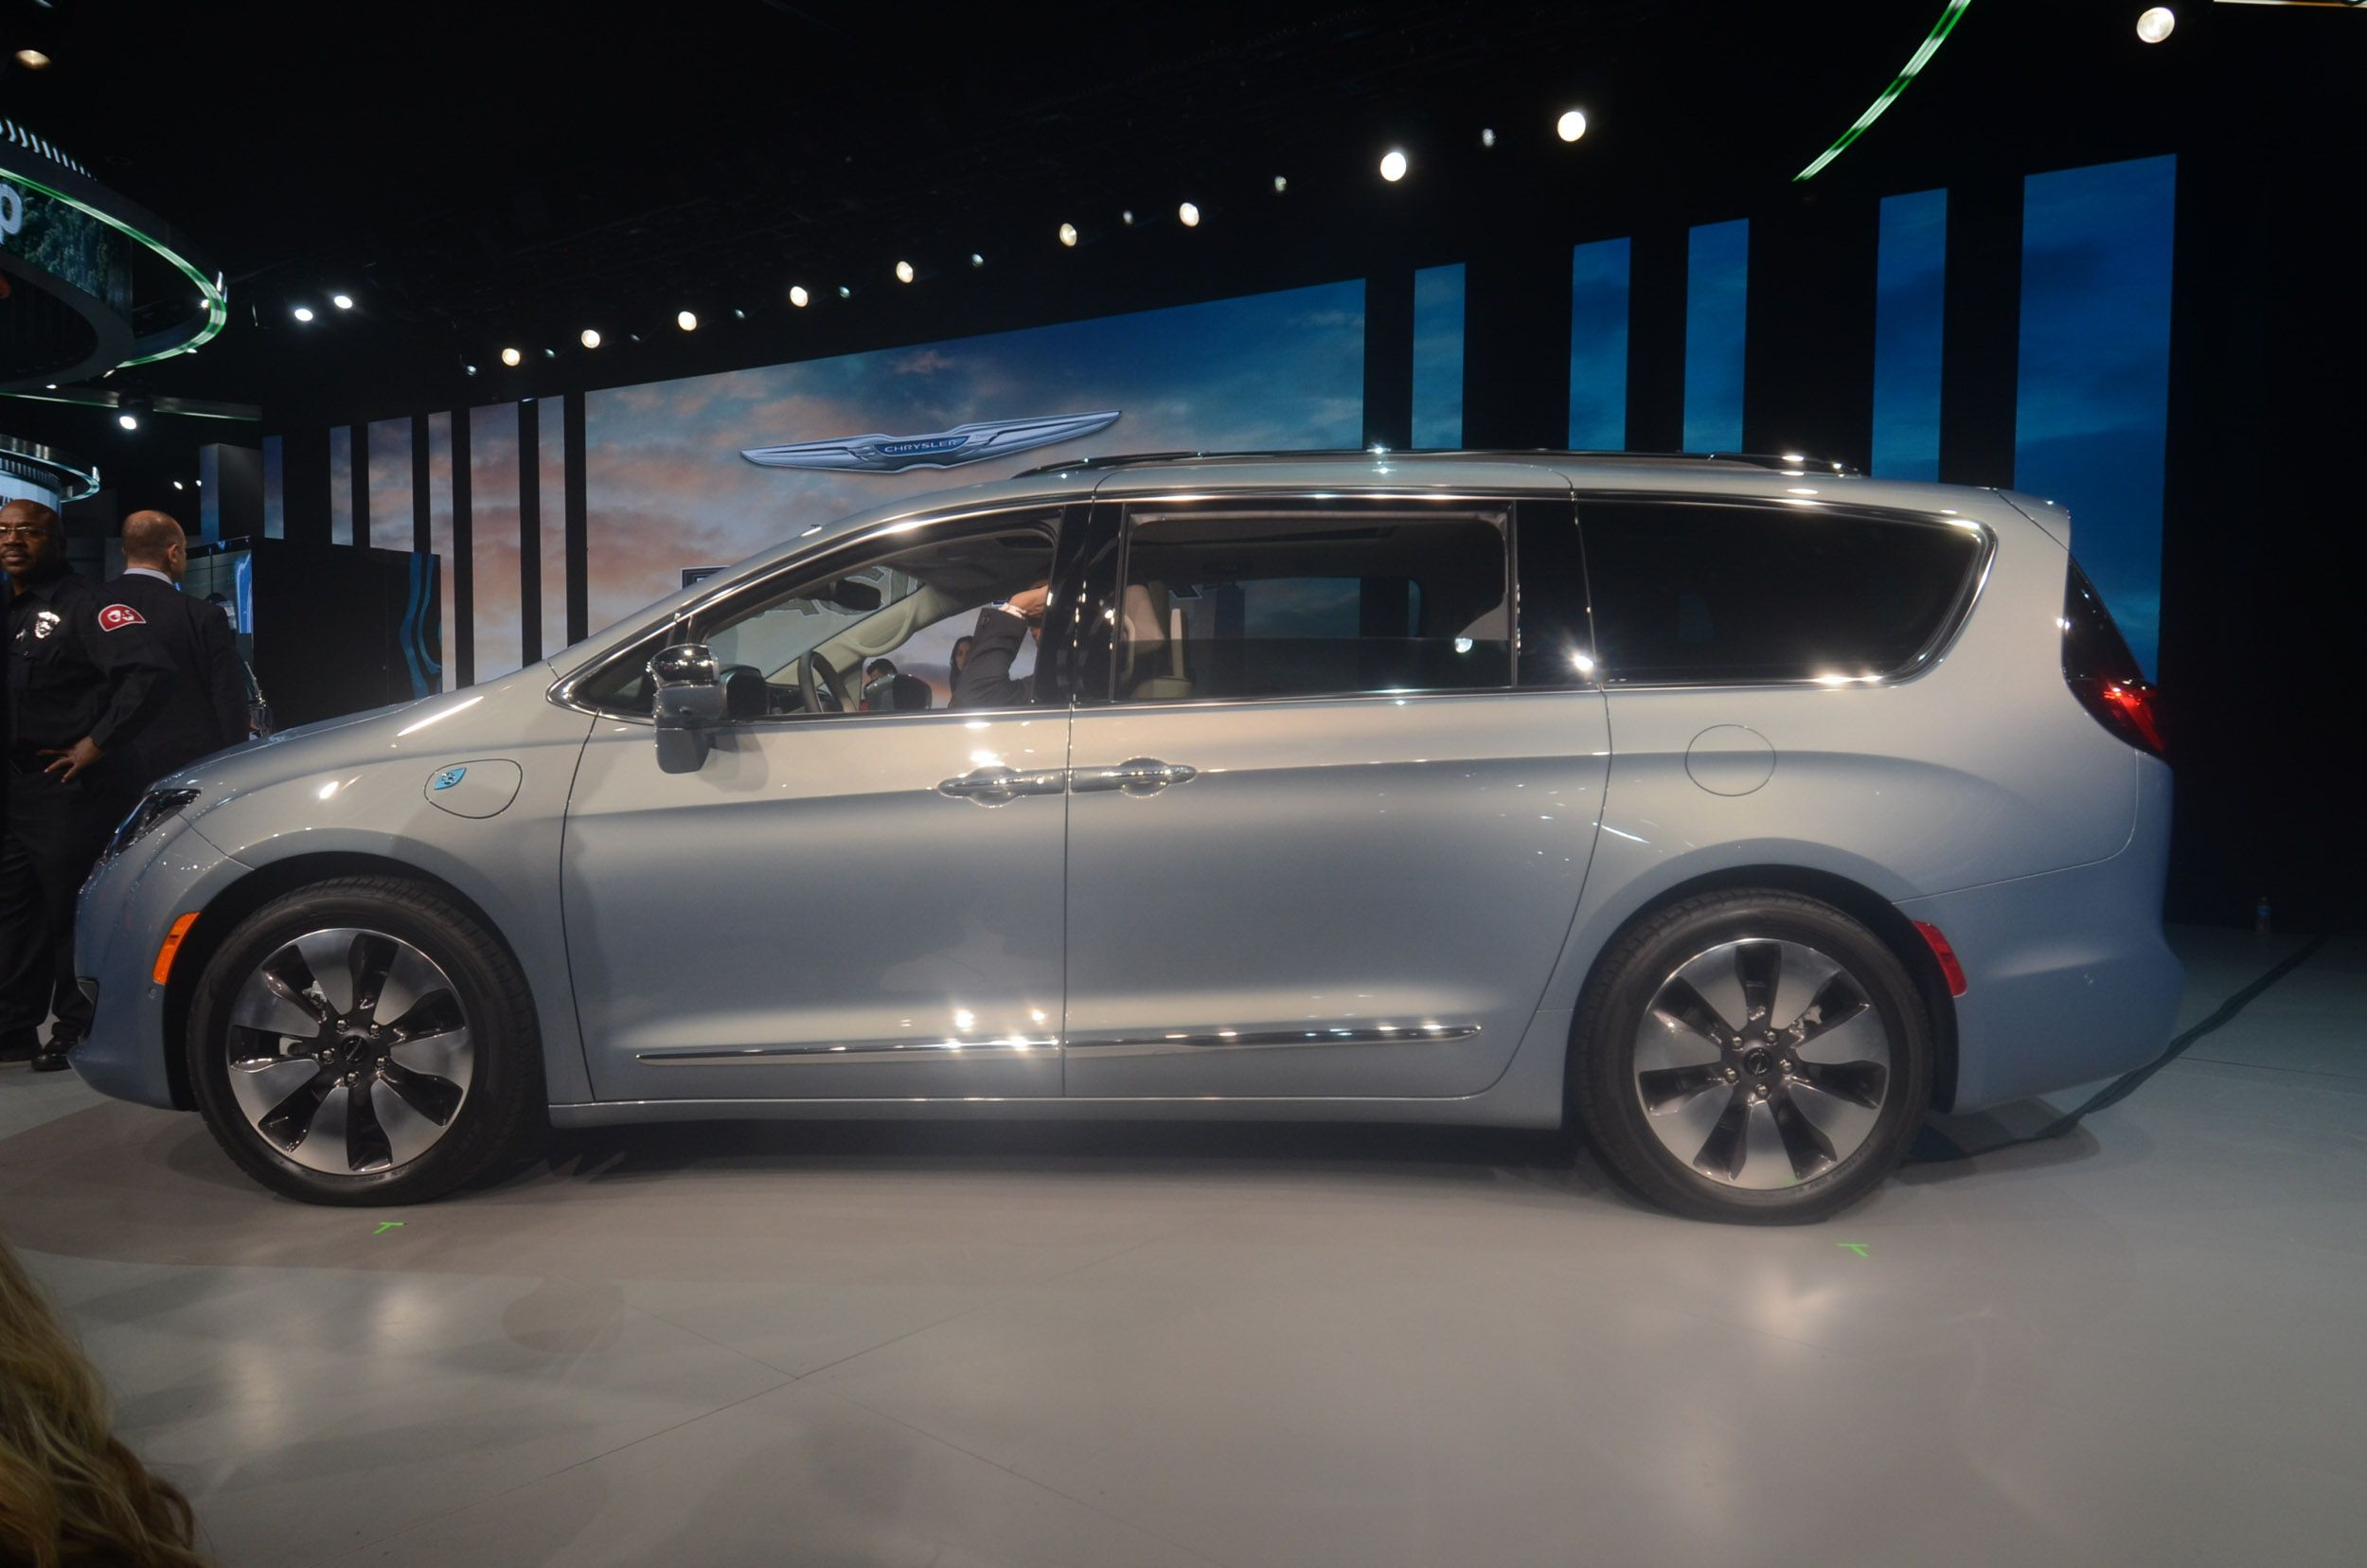 2017 Chrysler Pacifica Chrysler Pacifica Chrysler Pacifica 2017 Reliable Cars